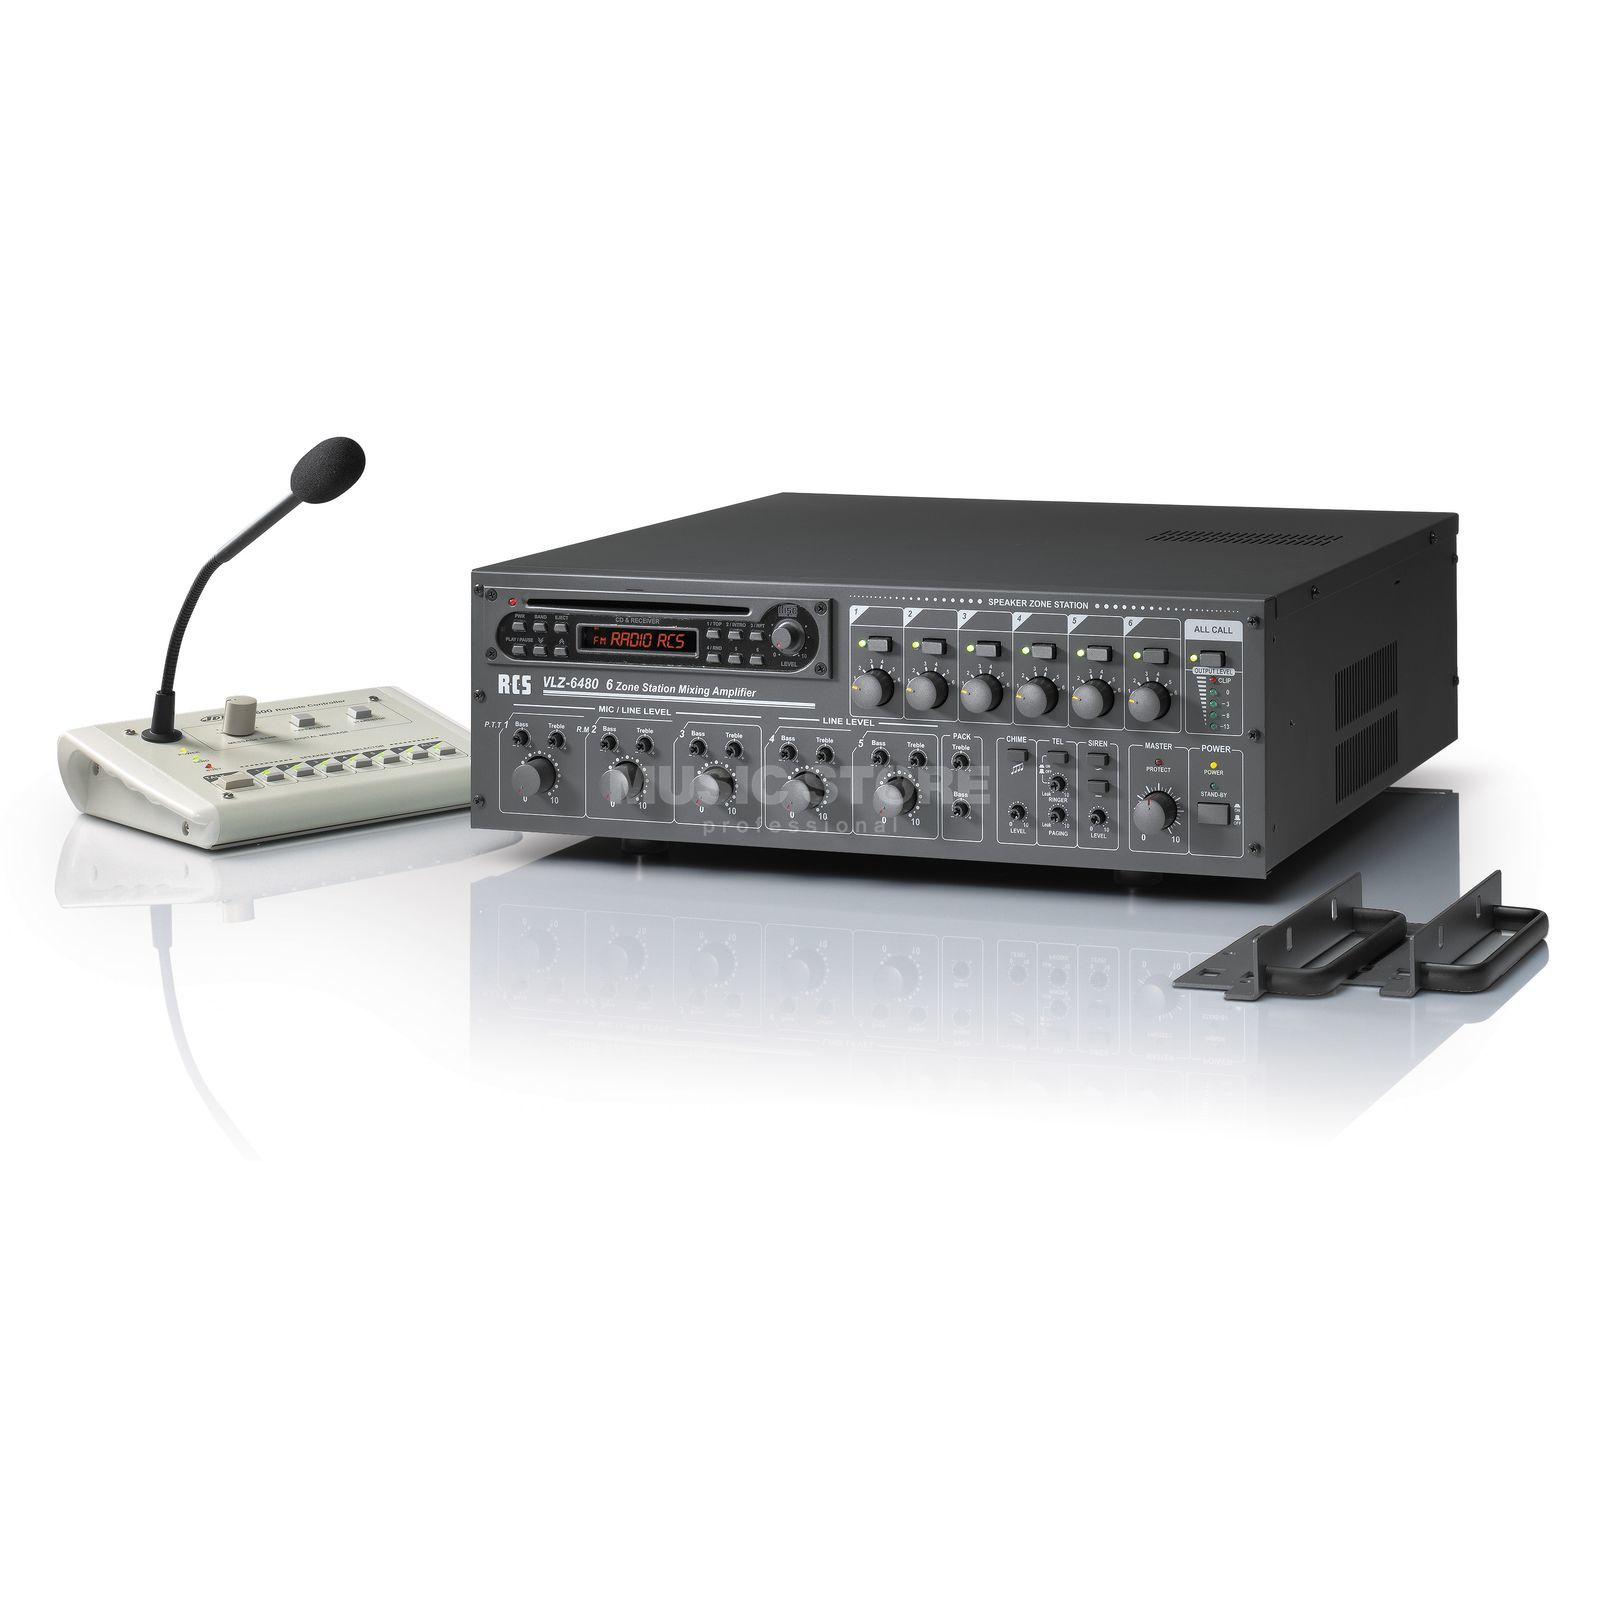 RCS Audio-Systems GmbH VLZ-6240A 6-Zones Mixer 240W RMS, 3HE Produktbillede